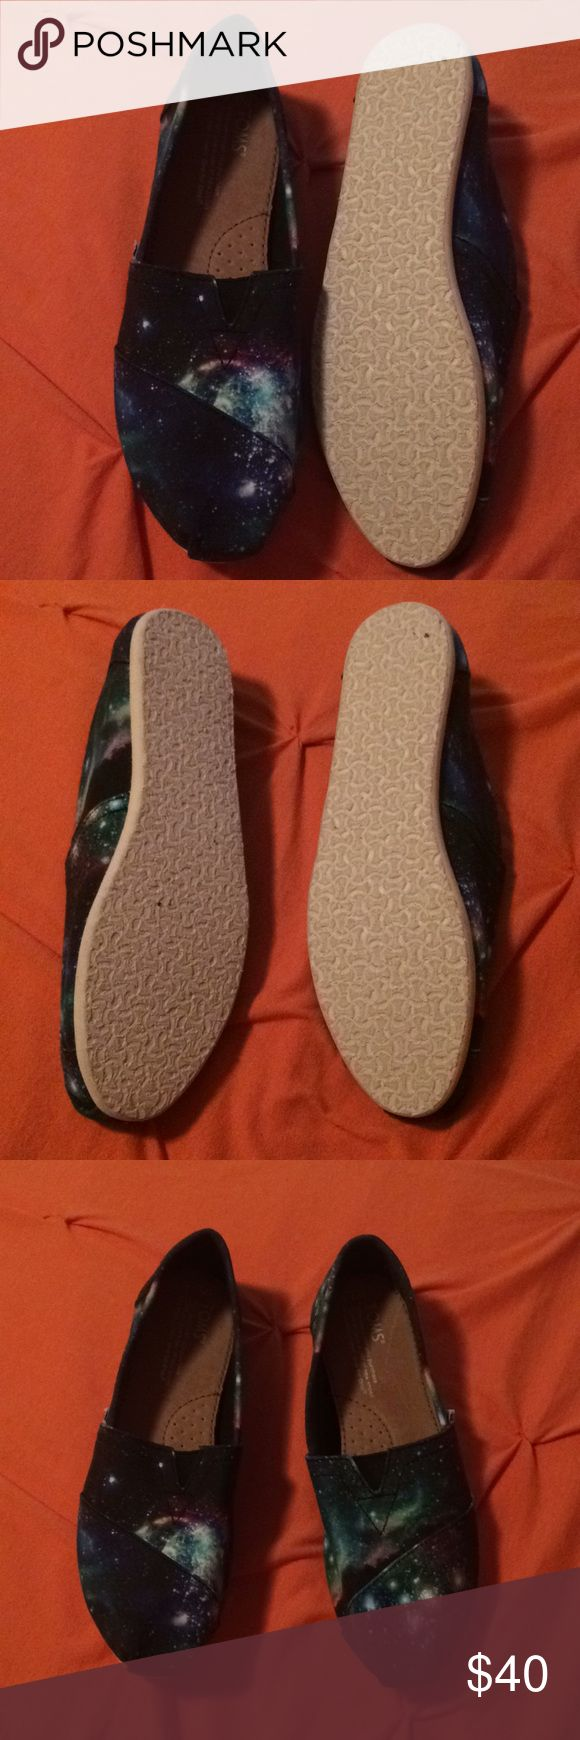 Galaxy Toms Perfect condition and worn only once Toms Shoes Flats & Loafers